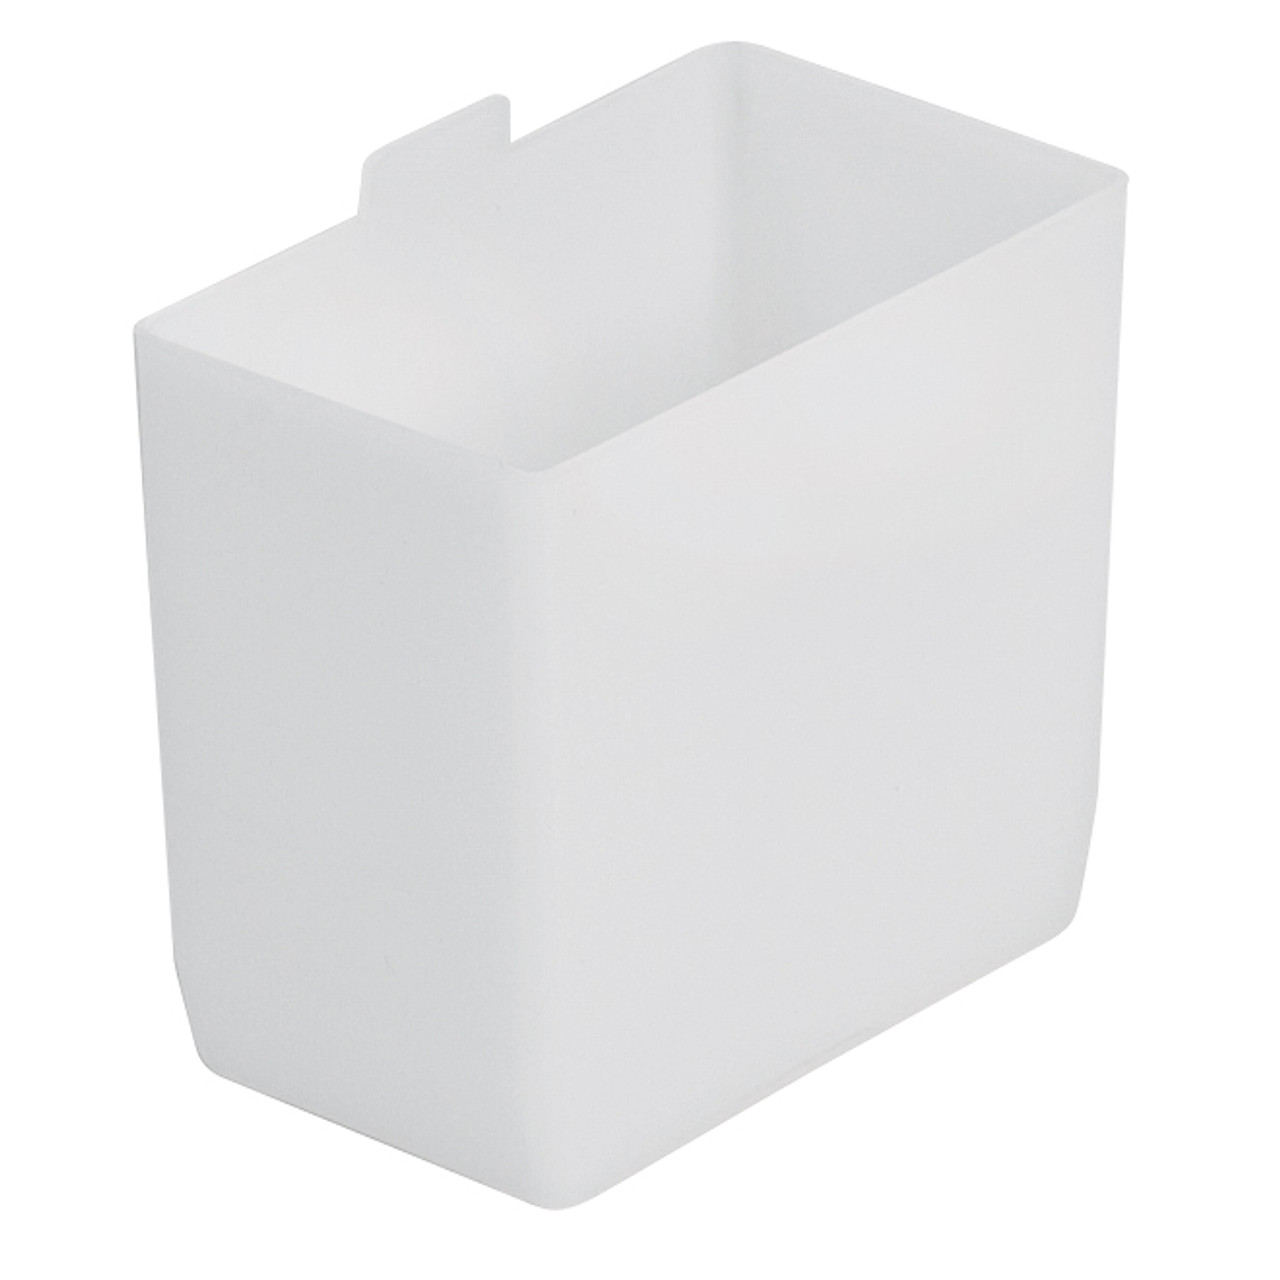 Cup, Small Bin Cup for Shelf Bins, Clear  30101